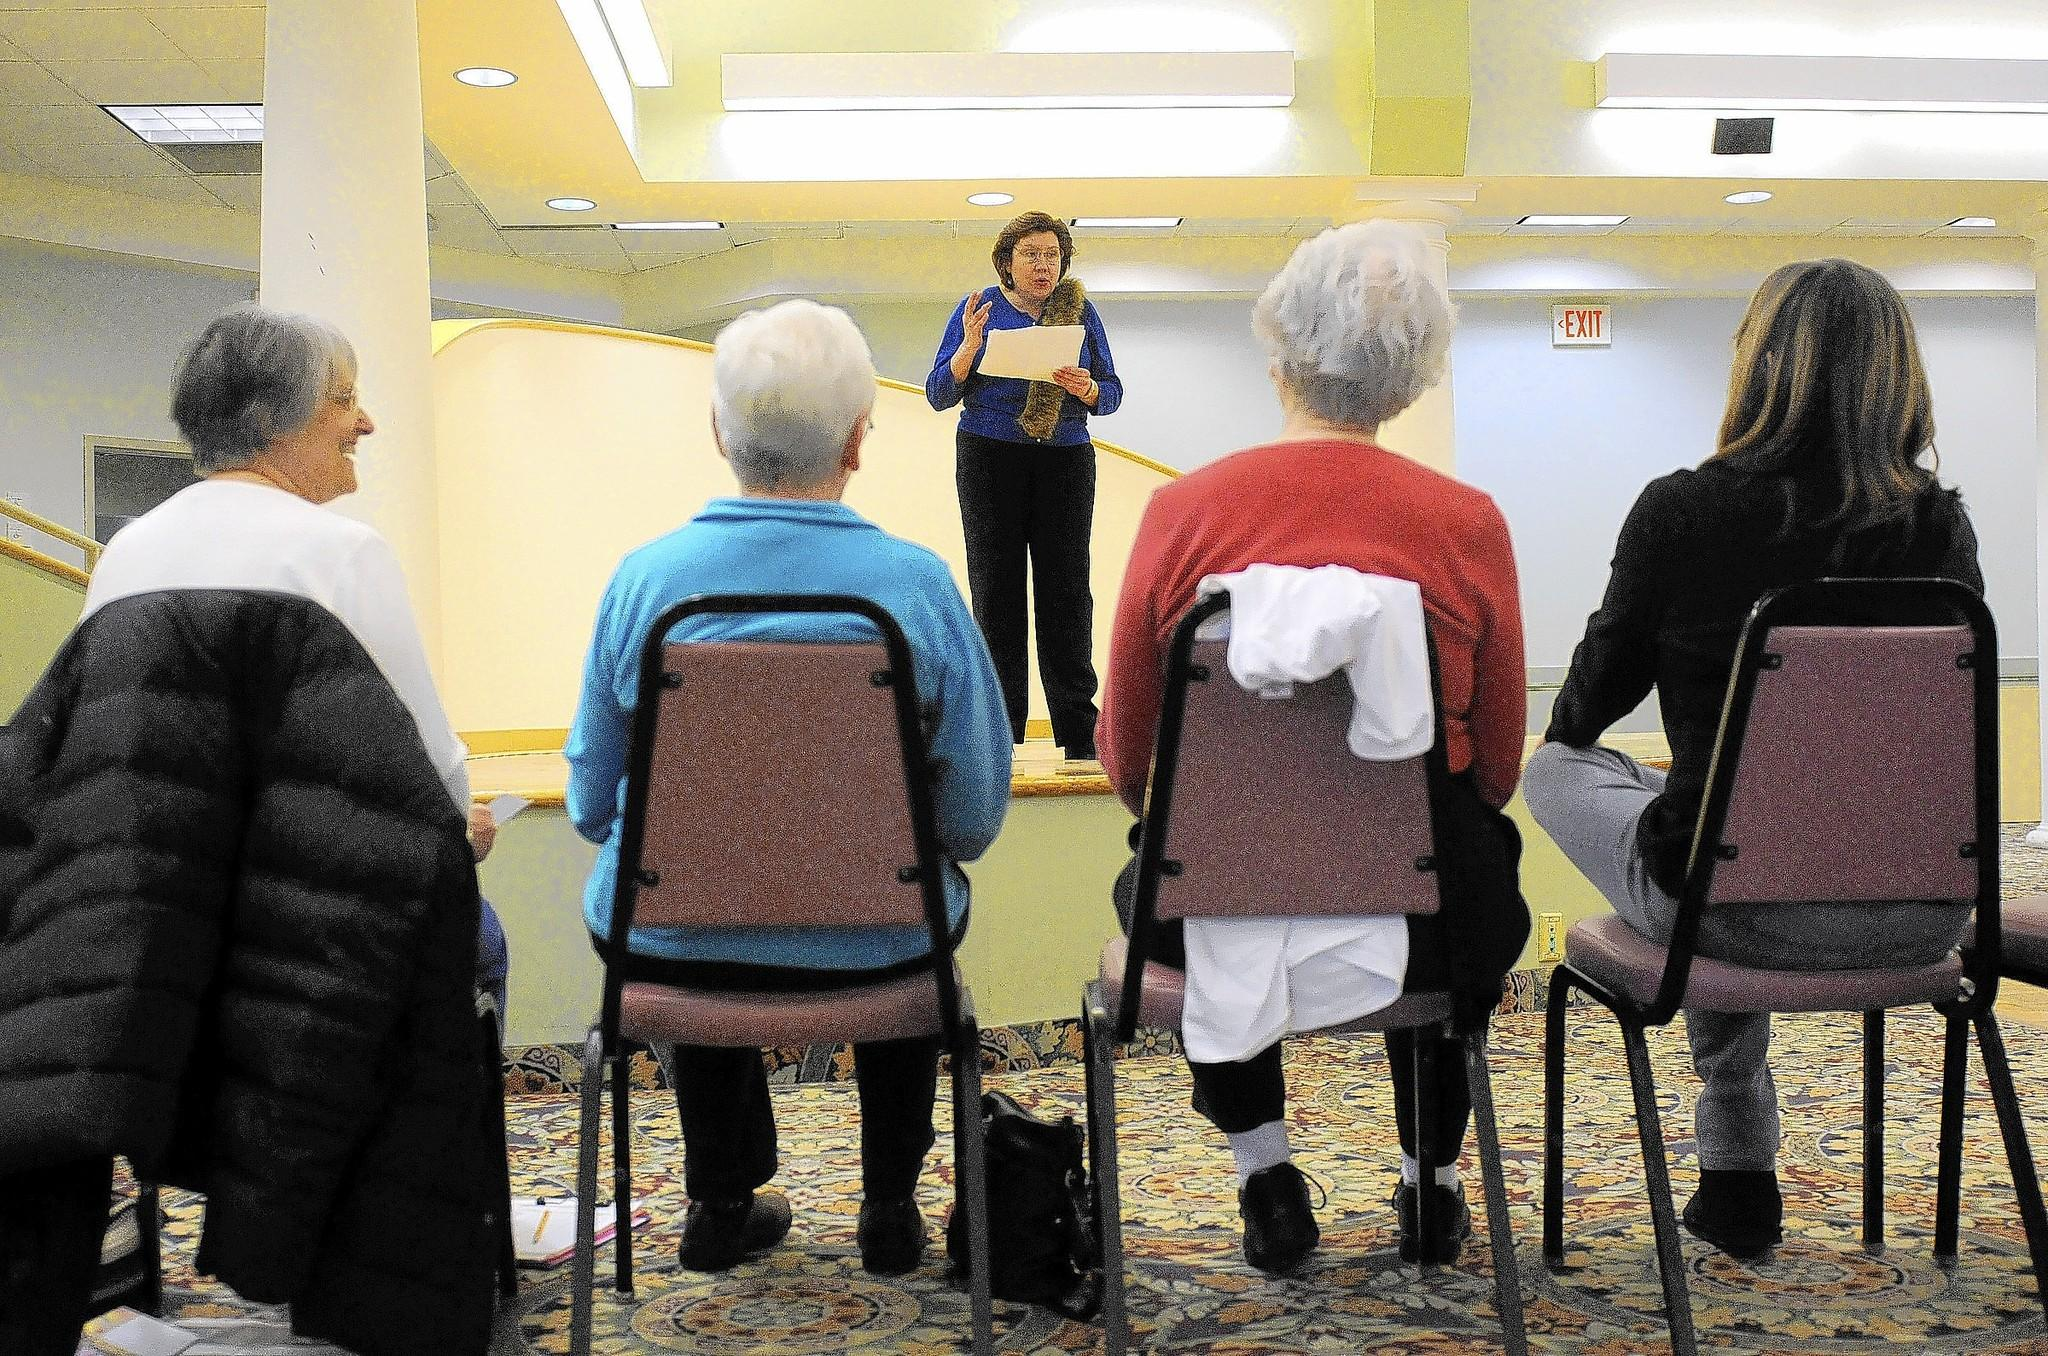 ENFIELD, CT; 2/24/2014; Student Mary Korostynski reads a monologue for fellow students and instructor Kathryn Pepe at a beginning acting class held Monday at the Enfield Senior Center. MICHAEL McANDREWS | mmcandrews@courant.com ORG XMIT: B583530782Z.1